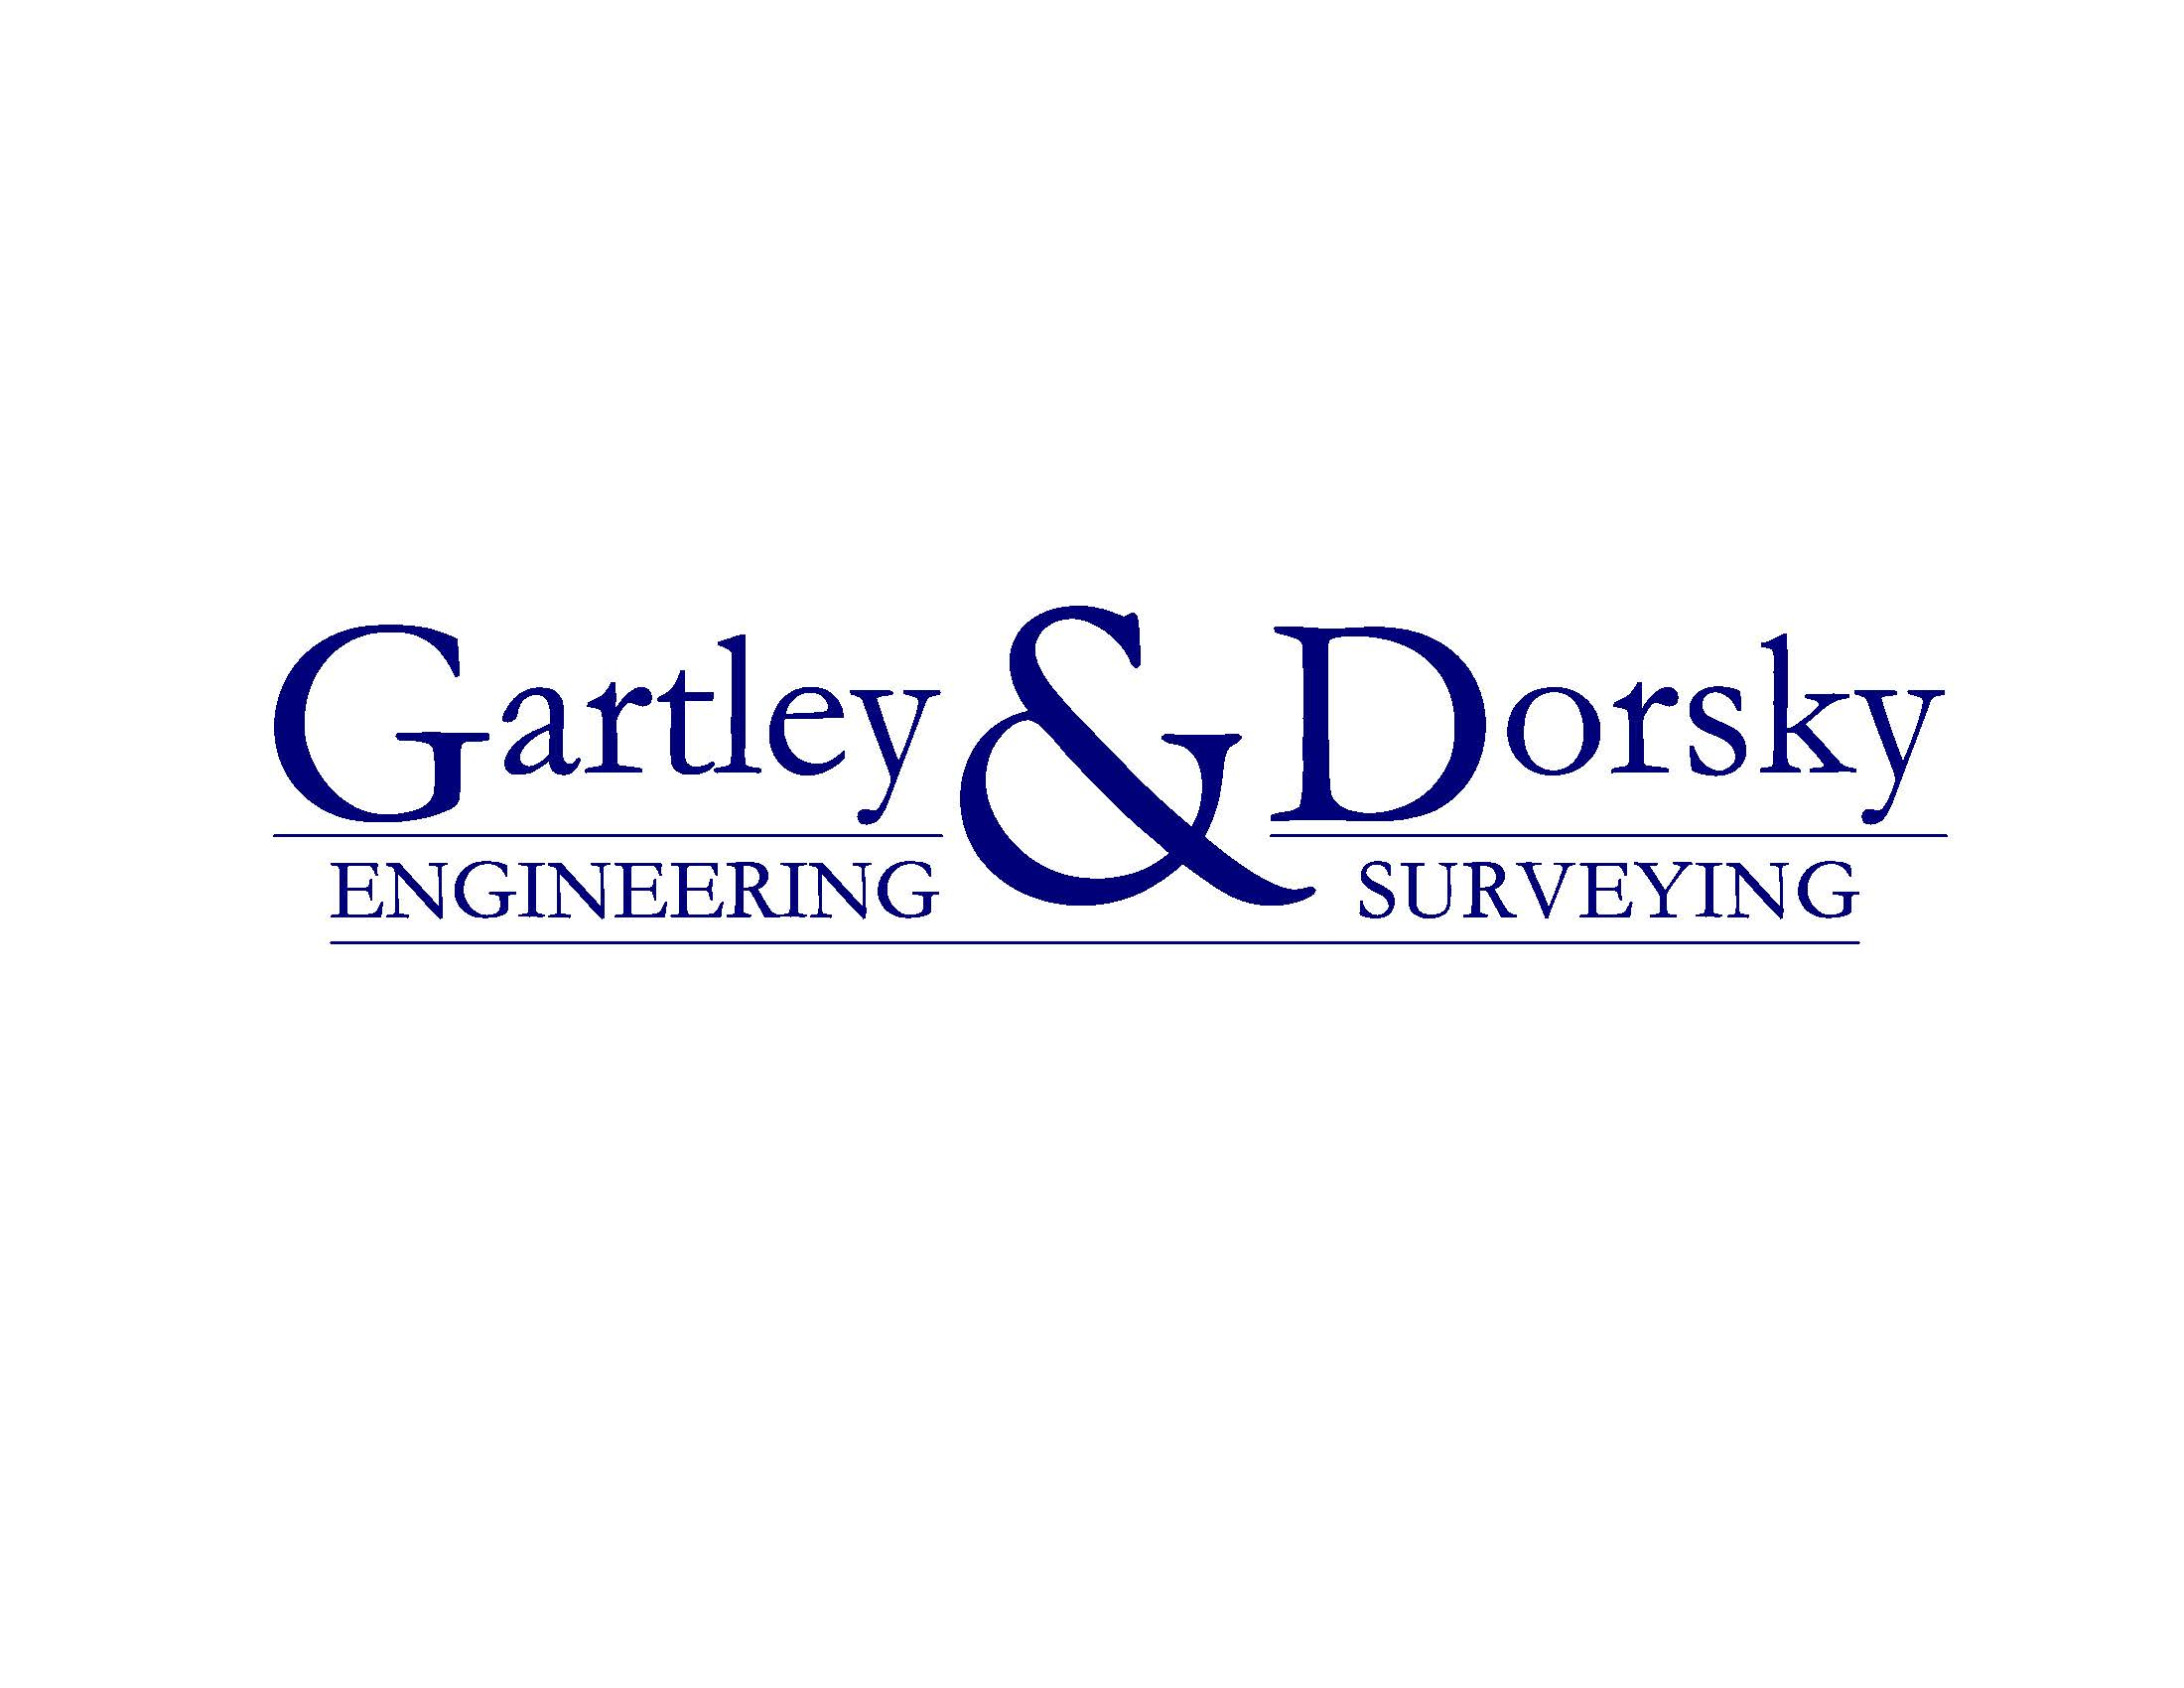 Gartley & Dorsky Engineering & Surveying